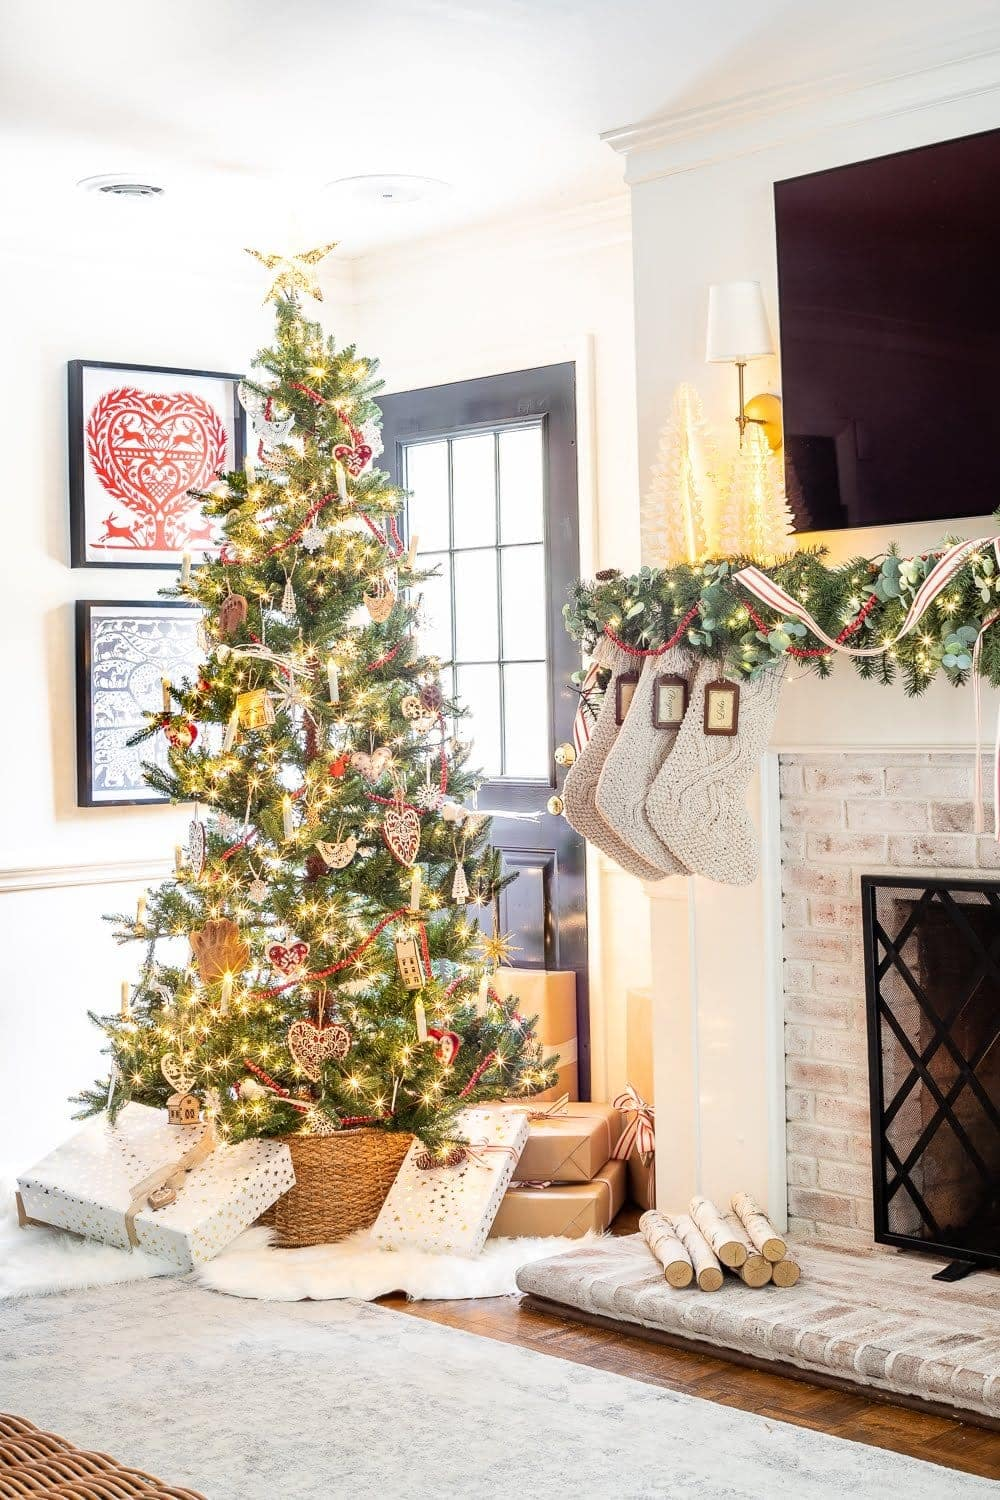 Swedish Christmas tree with Scandinavian inspired ornaments, abundant greenery, chunky knit stockings, nature touches, and pops of red.